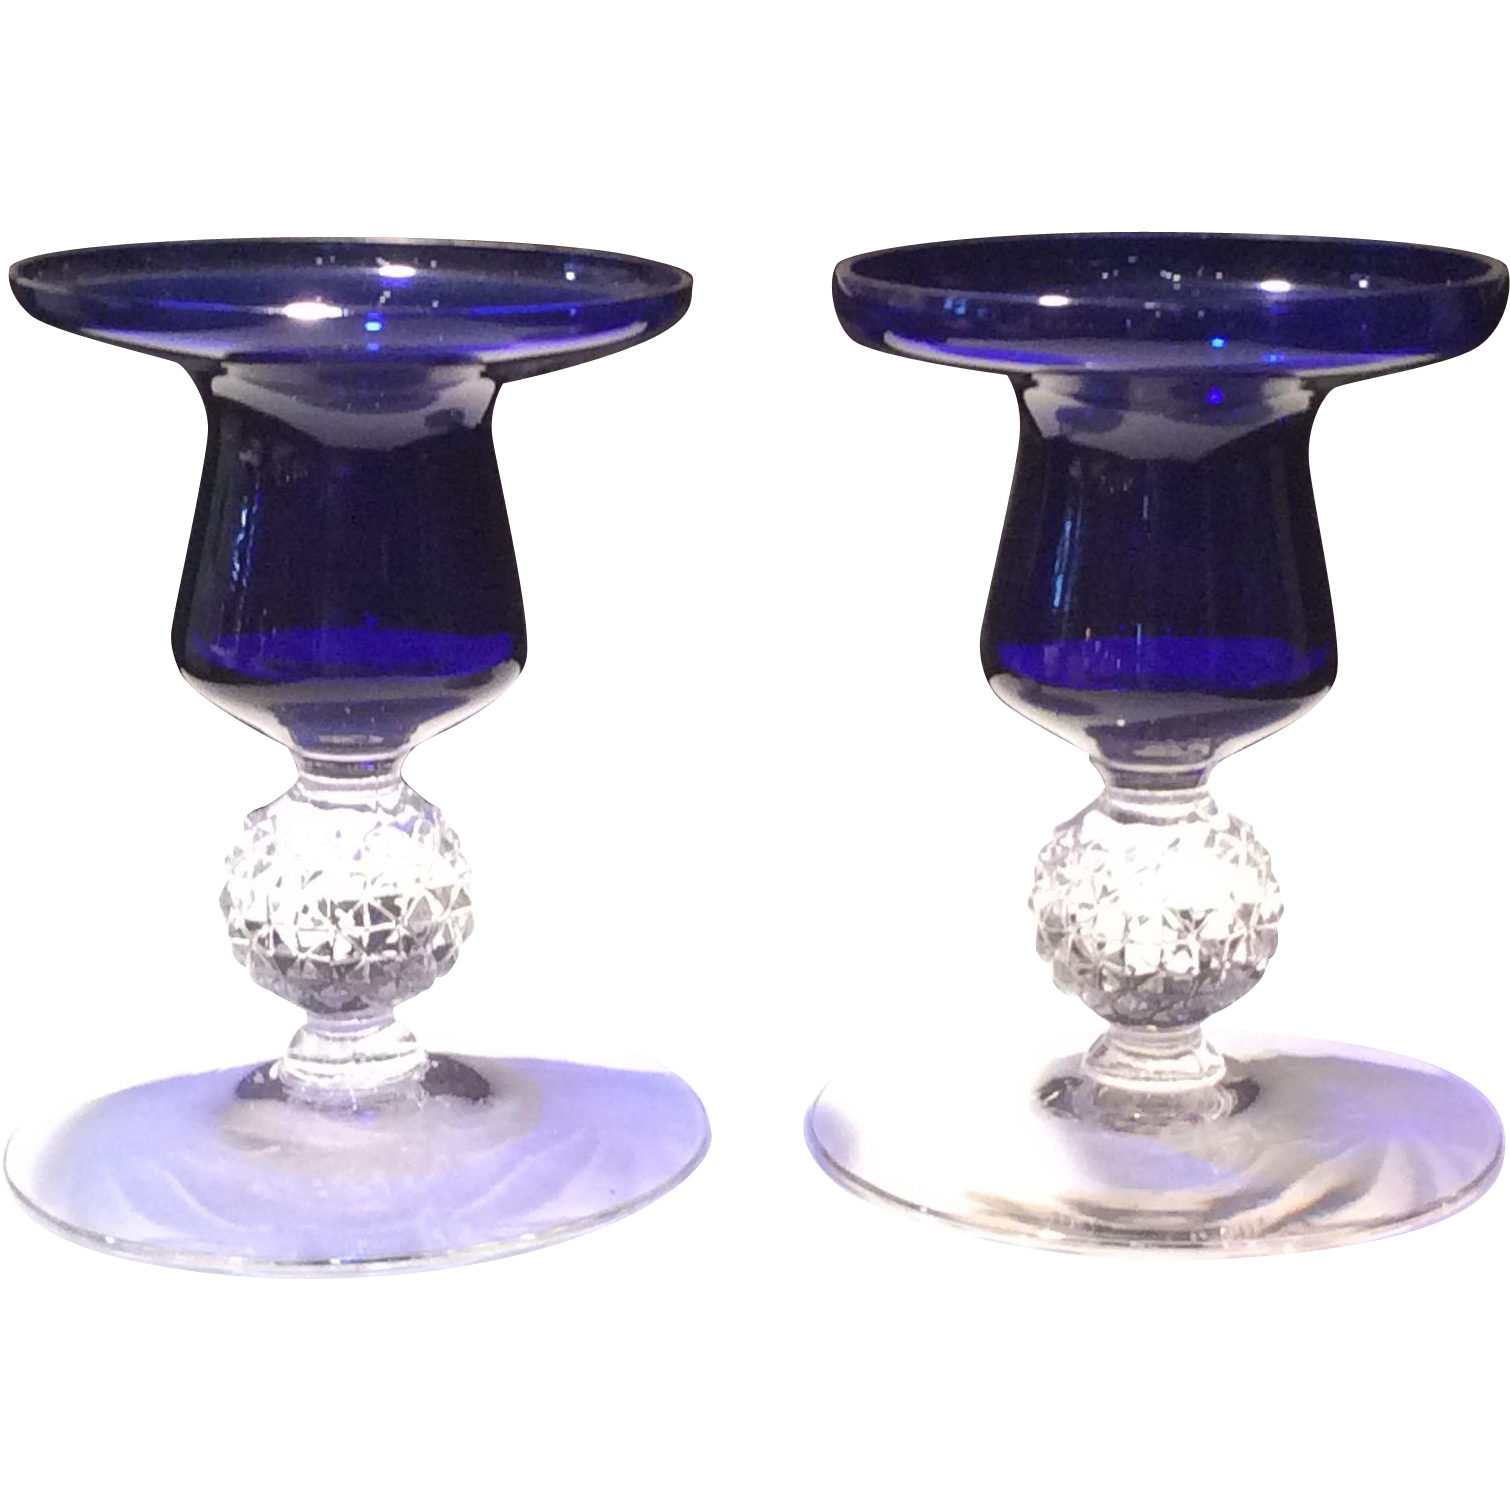 "Morgantown #7643 Ritz Blue (Cobalt) Jacobi 4"" Candleholders (Two)"